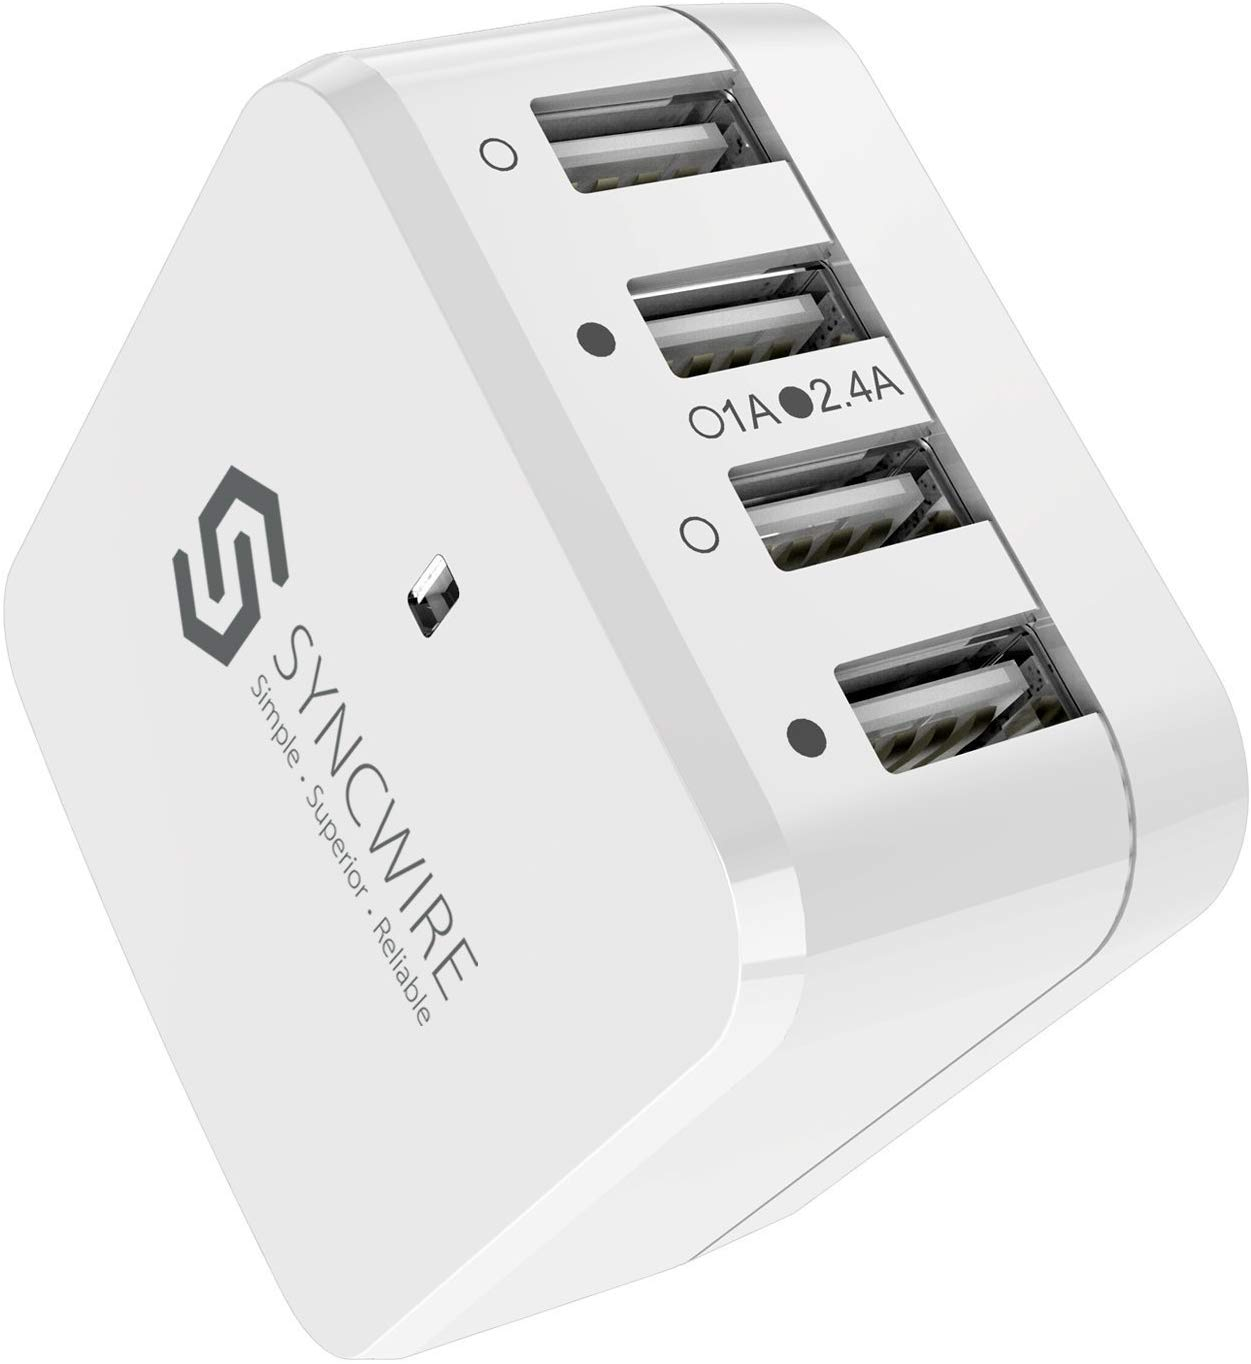 Syncwire USB Wall Charger Travel Plug - 34W/6.8A 4-Port Fast Charger